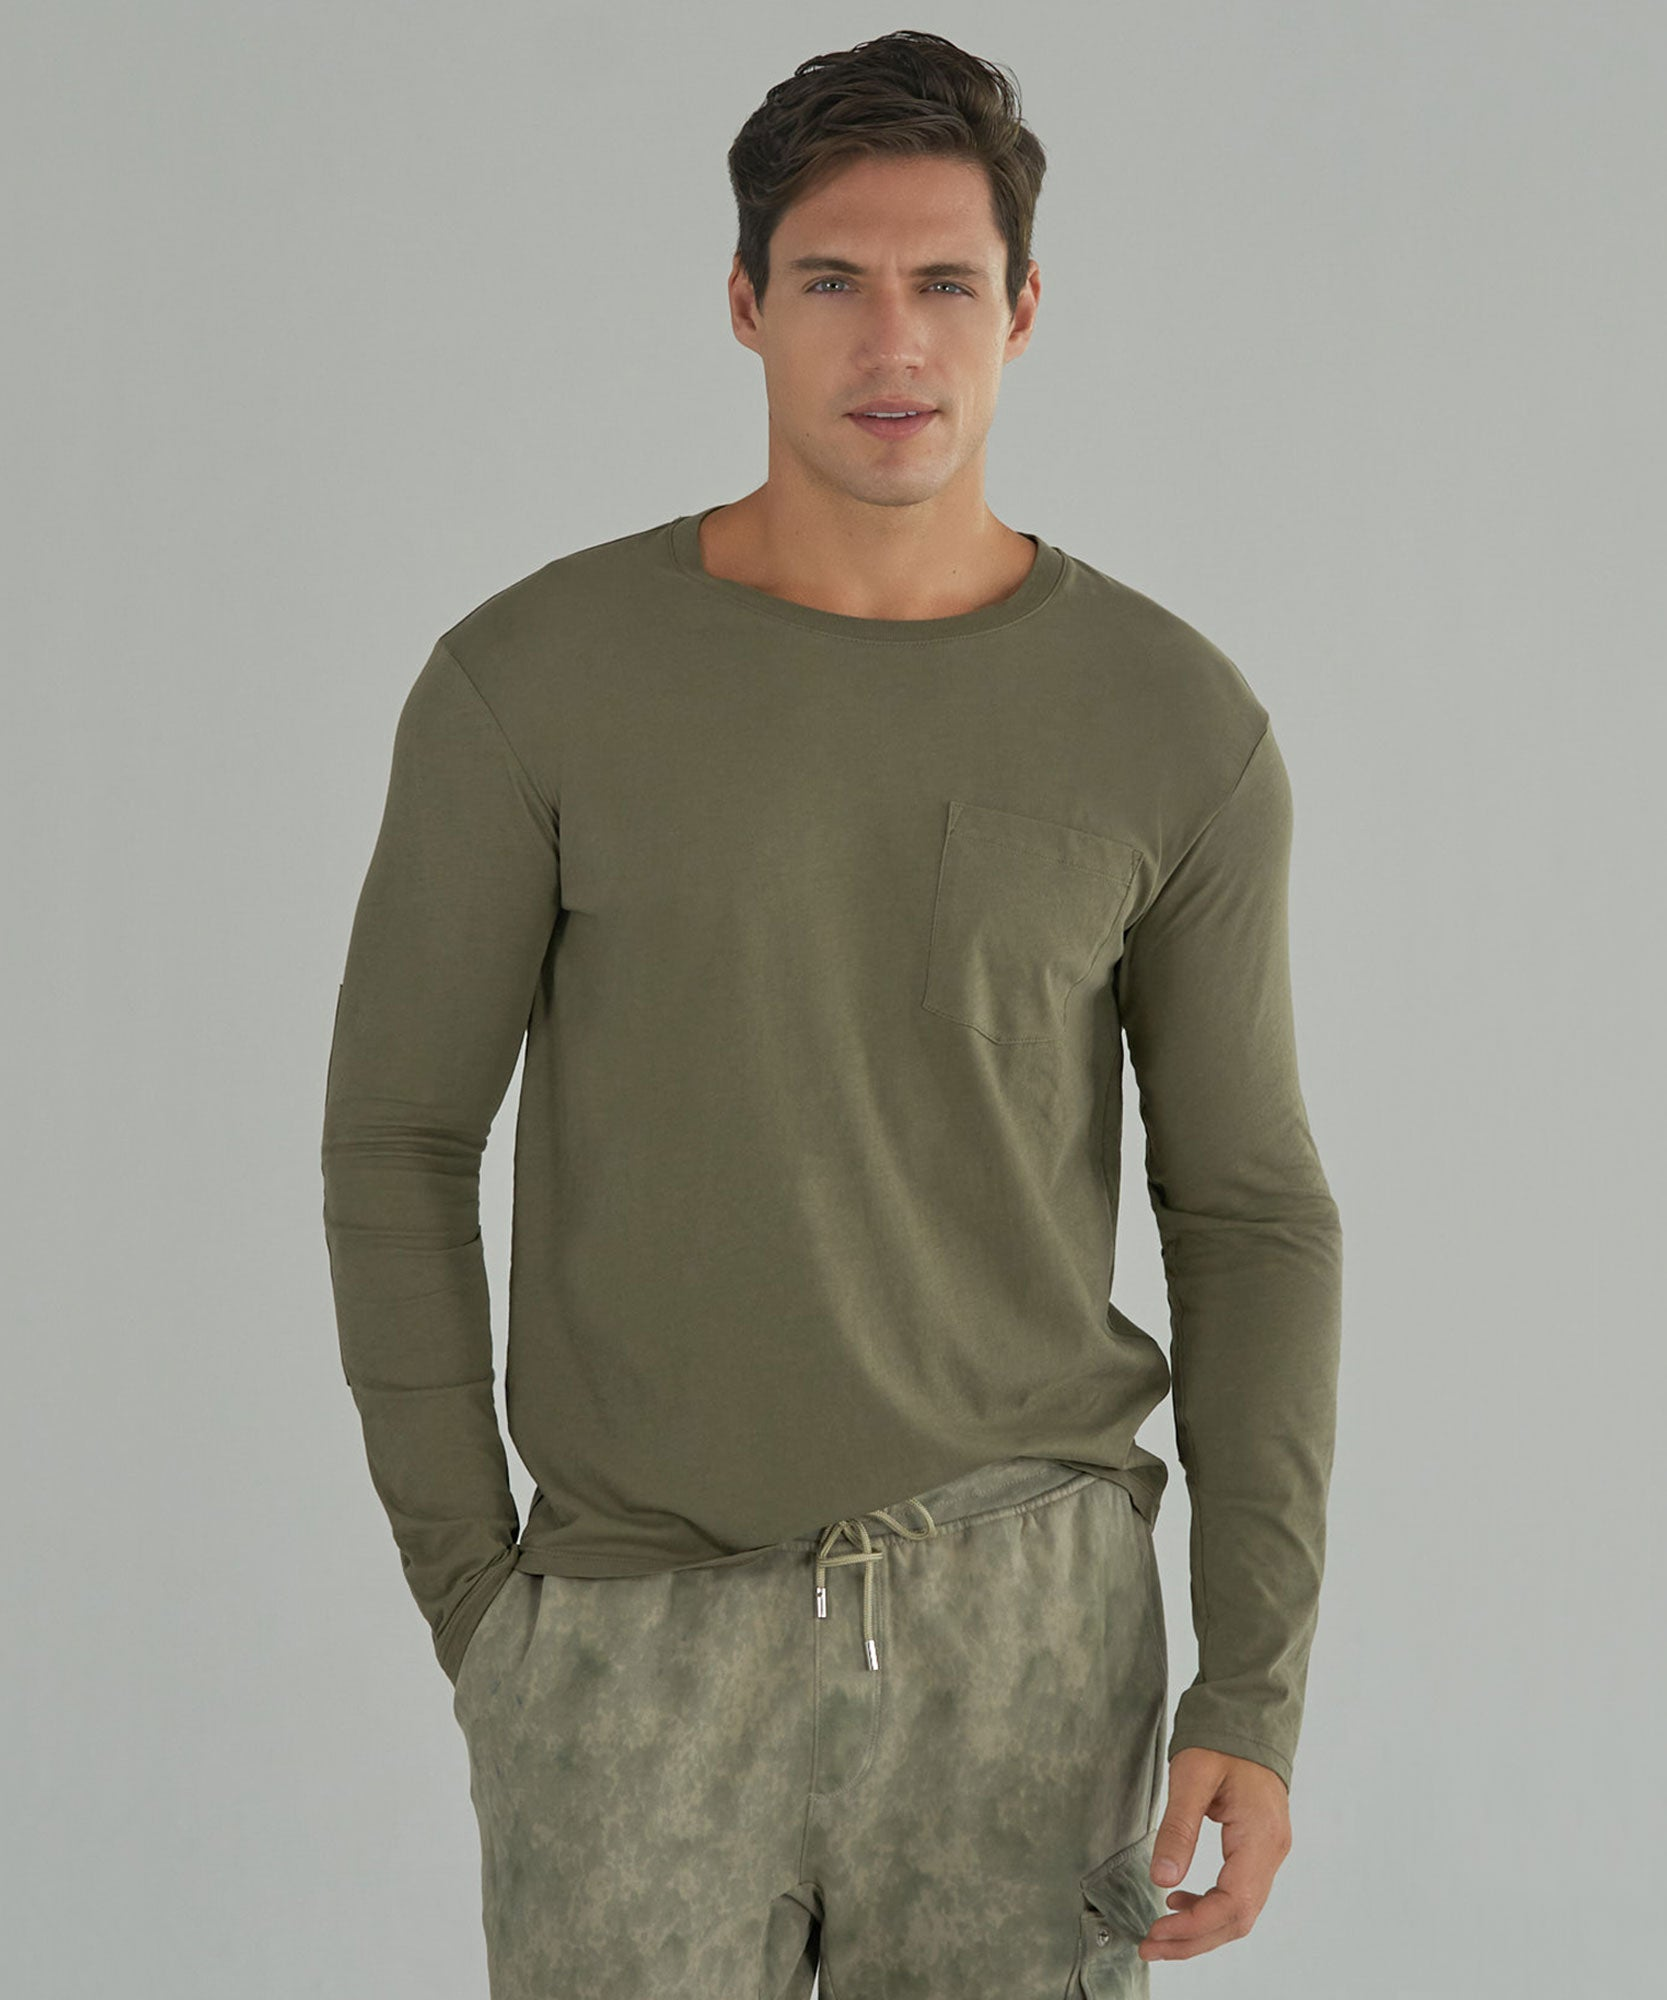 Army Combo Classic Jersey Long Sleeve Crew Neck Pocket Tee - Men's Long Sleeve T-Shirt by ATM Anthony Thomas Melillo